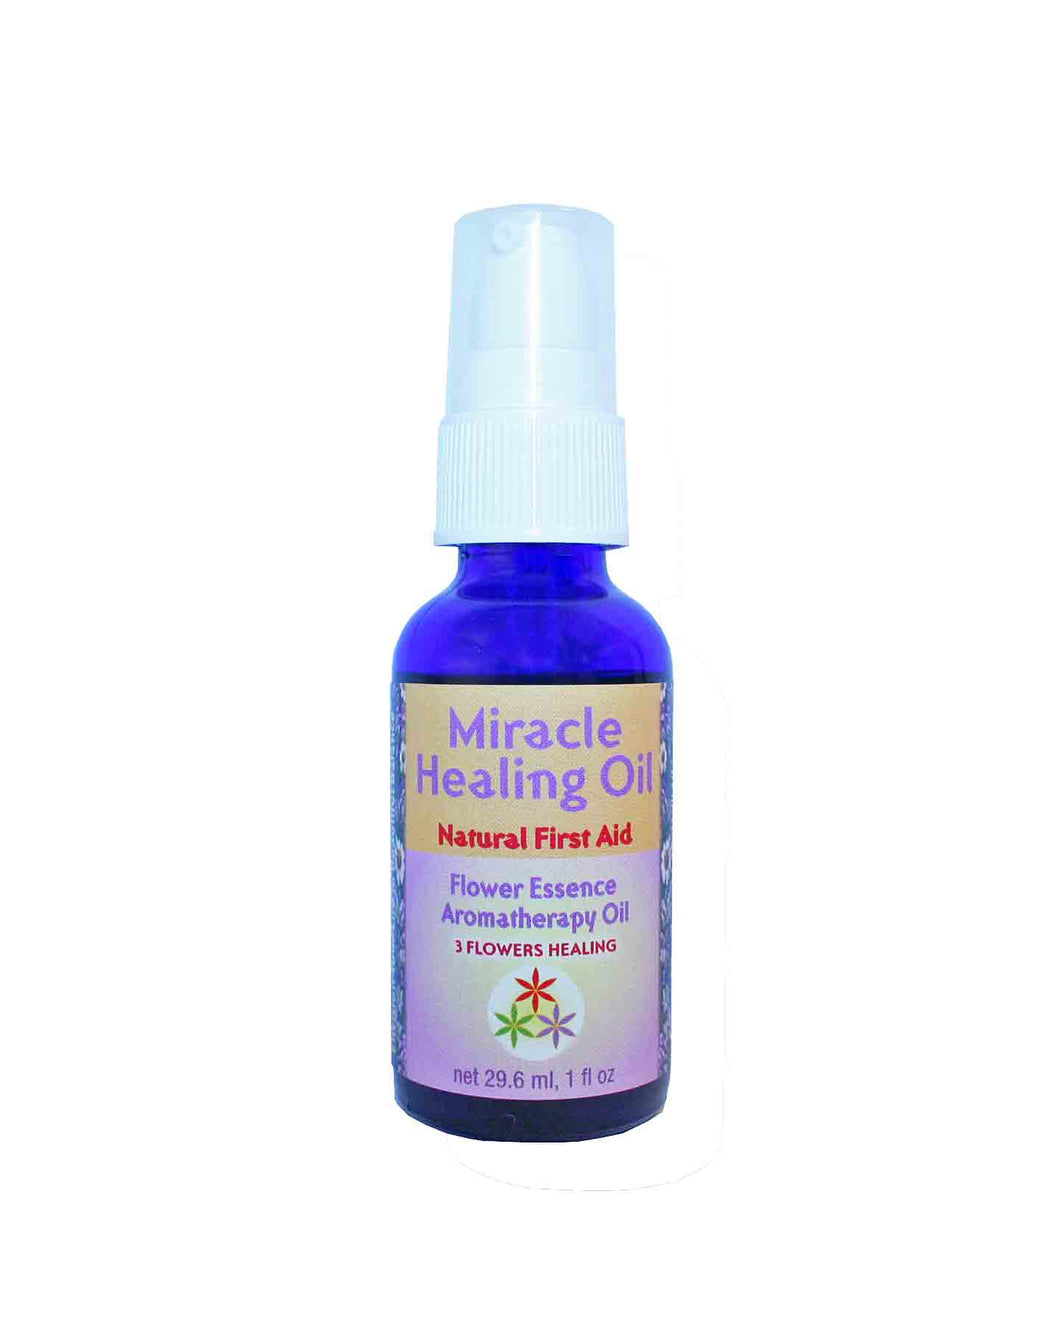 Miracle Healing Oil